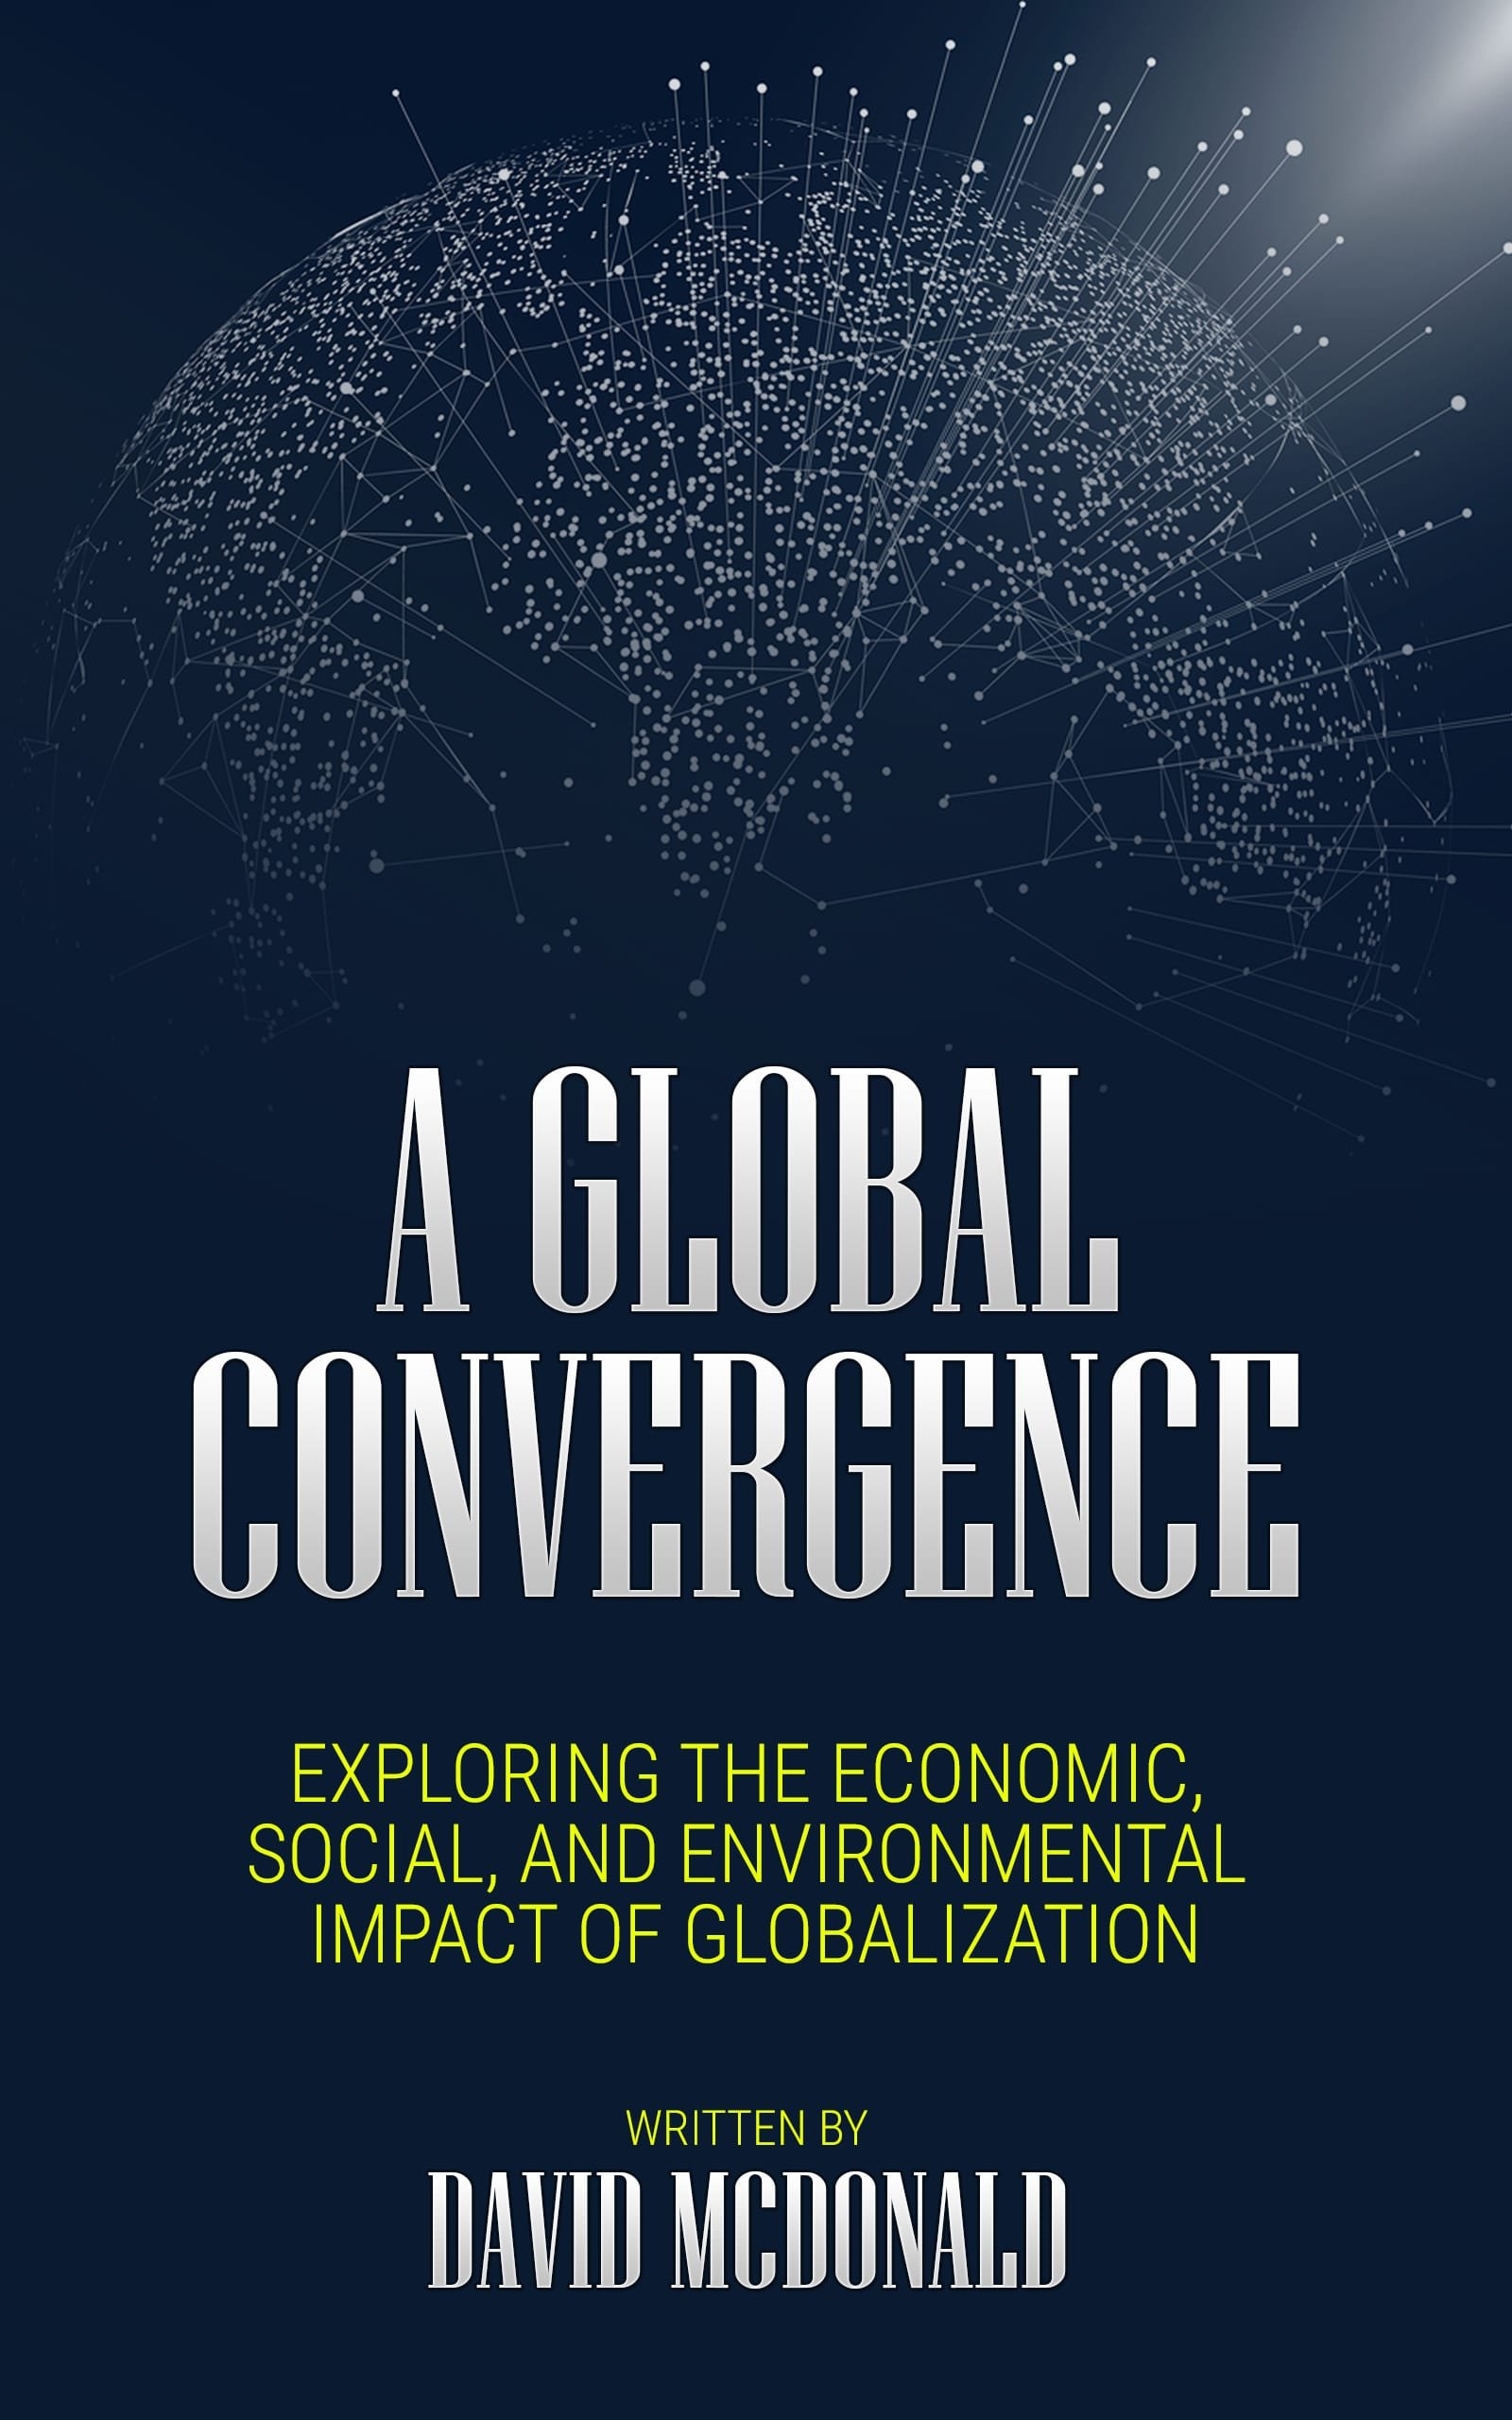 A Global Convergence: Exploring the economic, social, and environmental impact of globalization